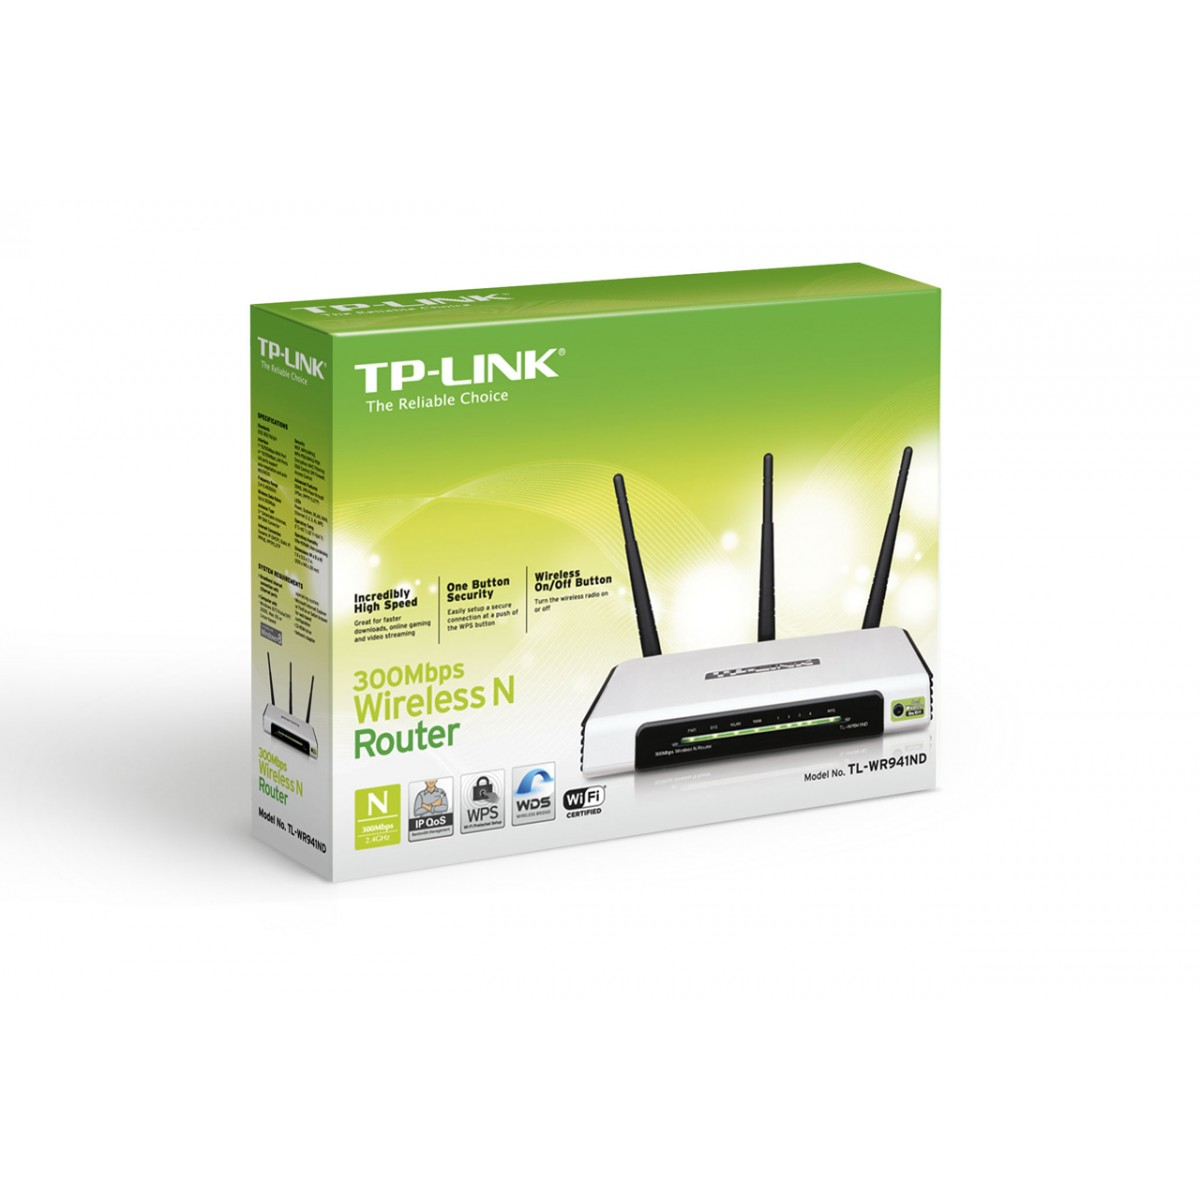 Roteador Wireless 300Mbps TL-WR941ND c/ 3 Antenas (Removiveis) - Tplink